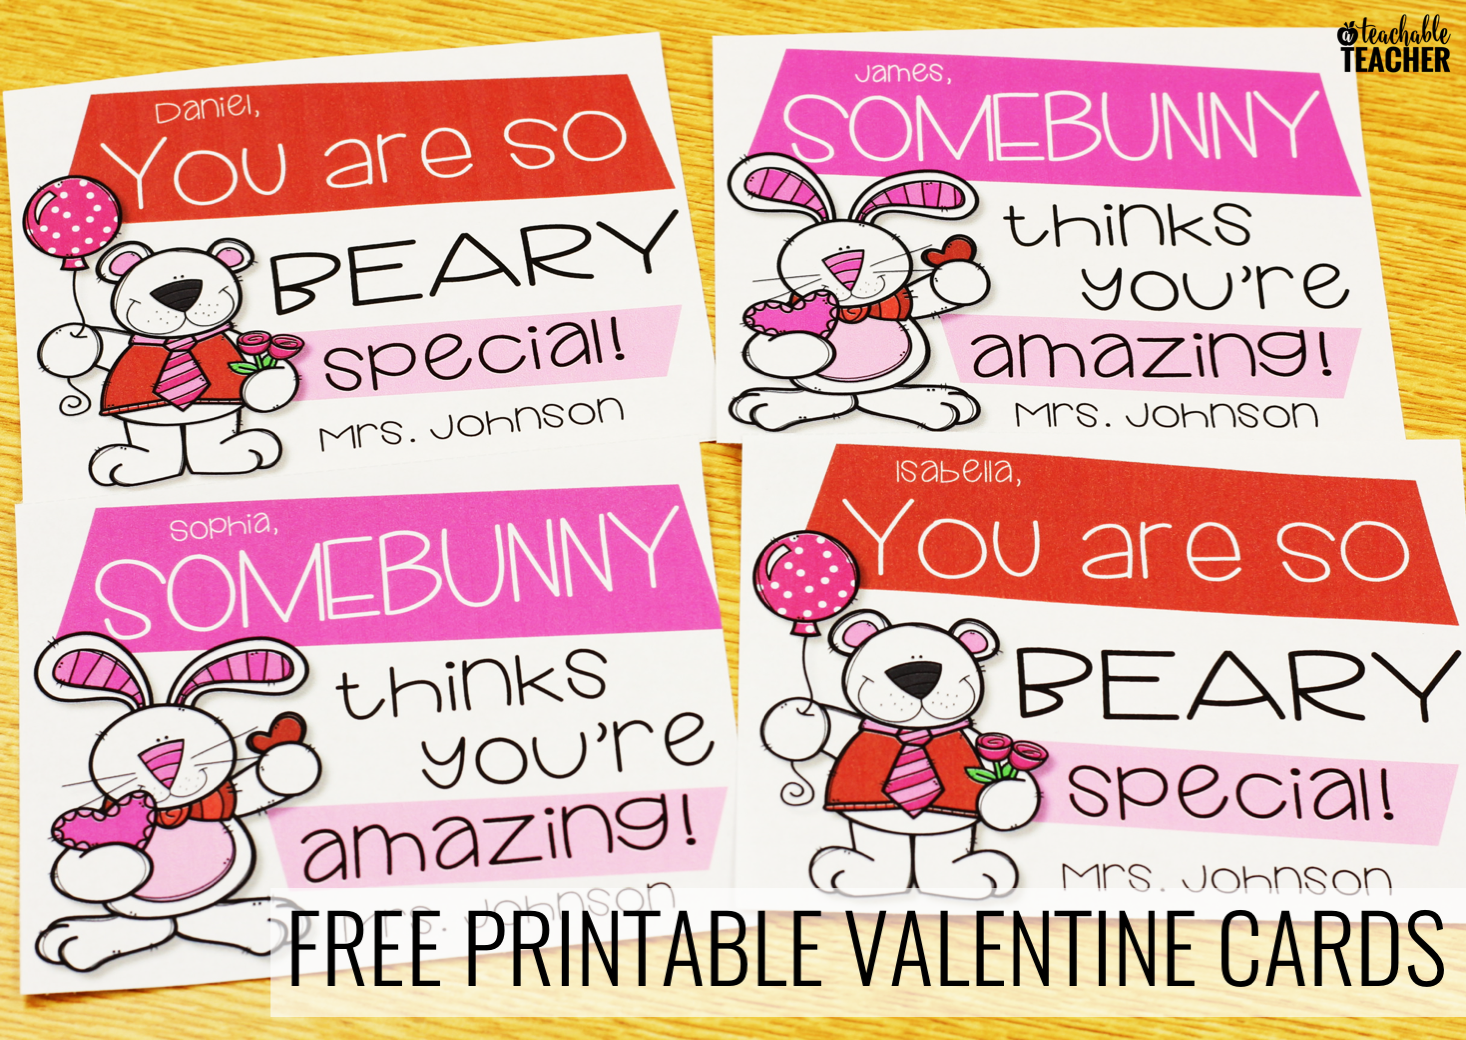 free printable teacher valentine cards